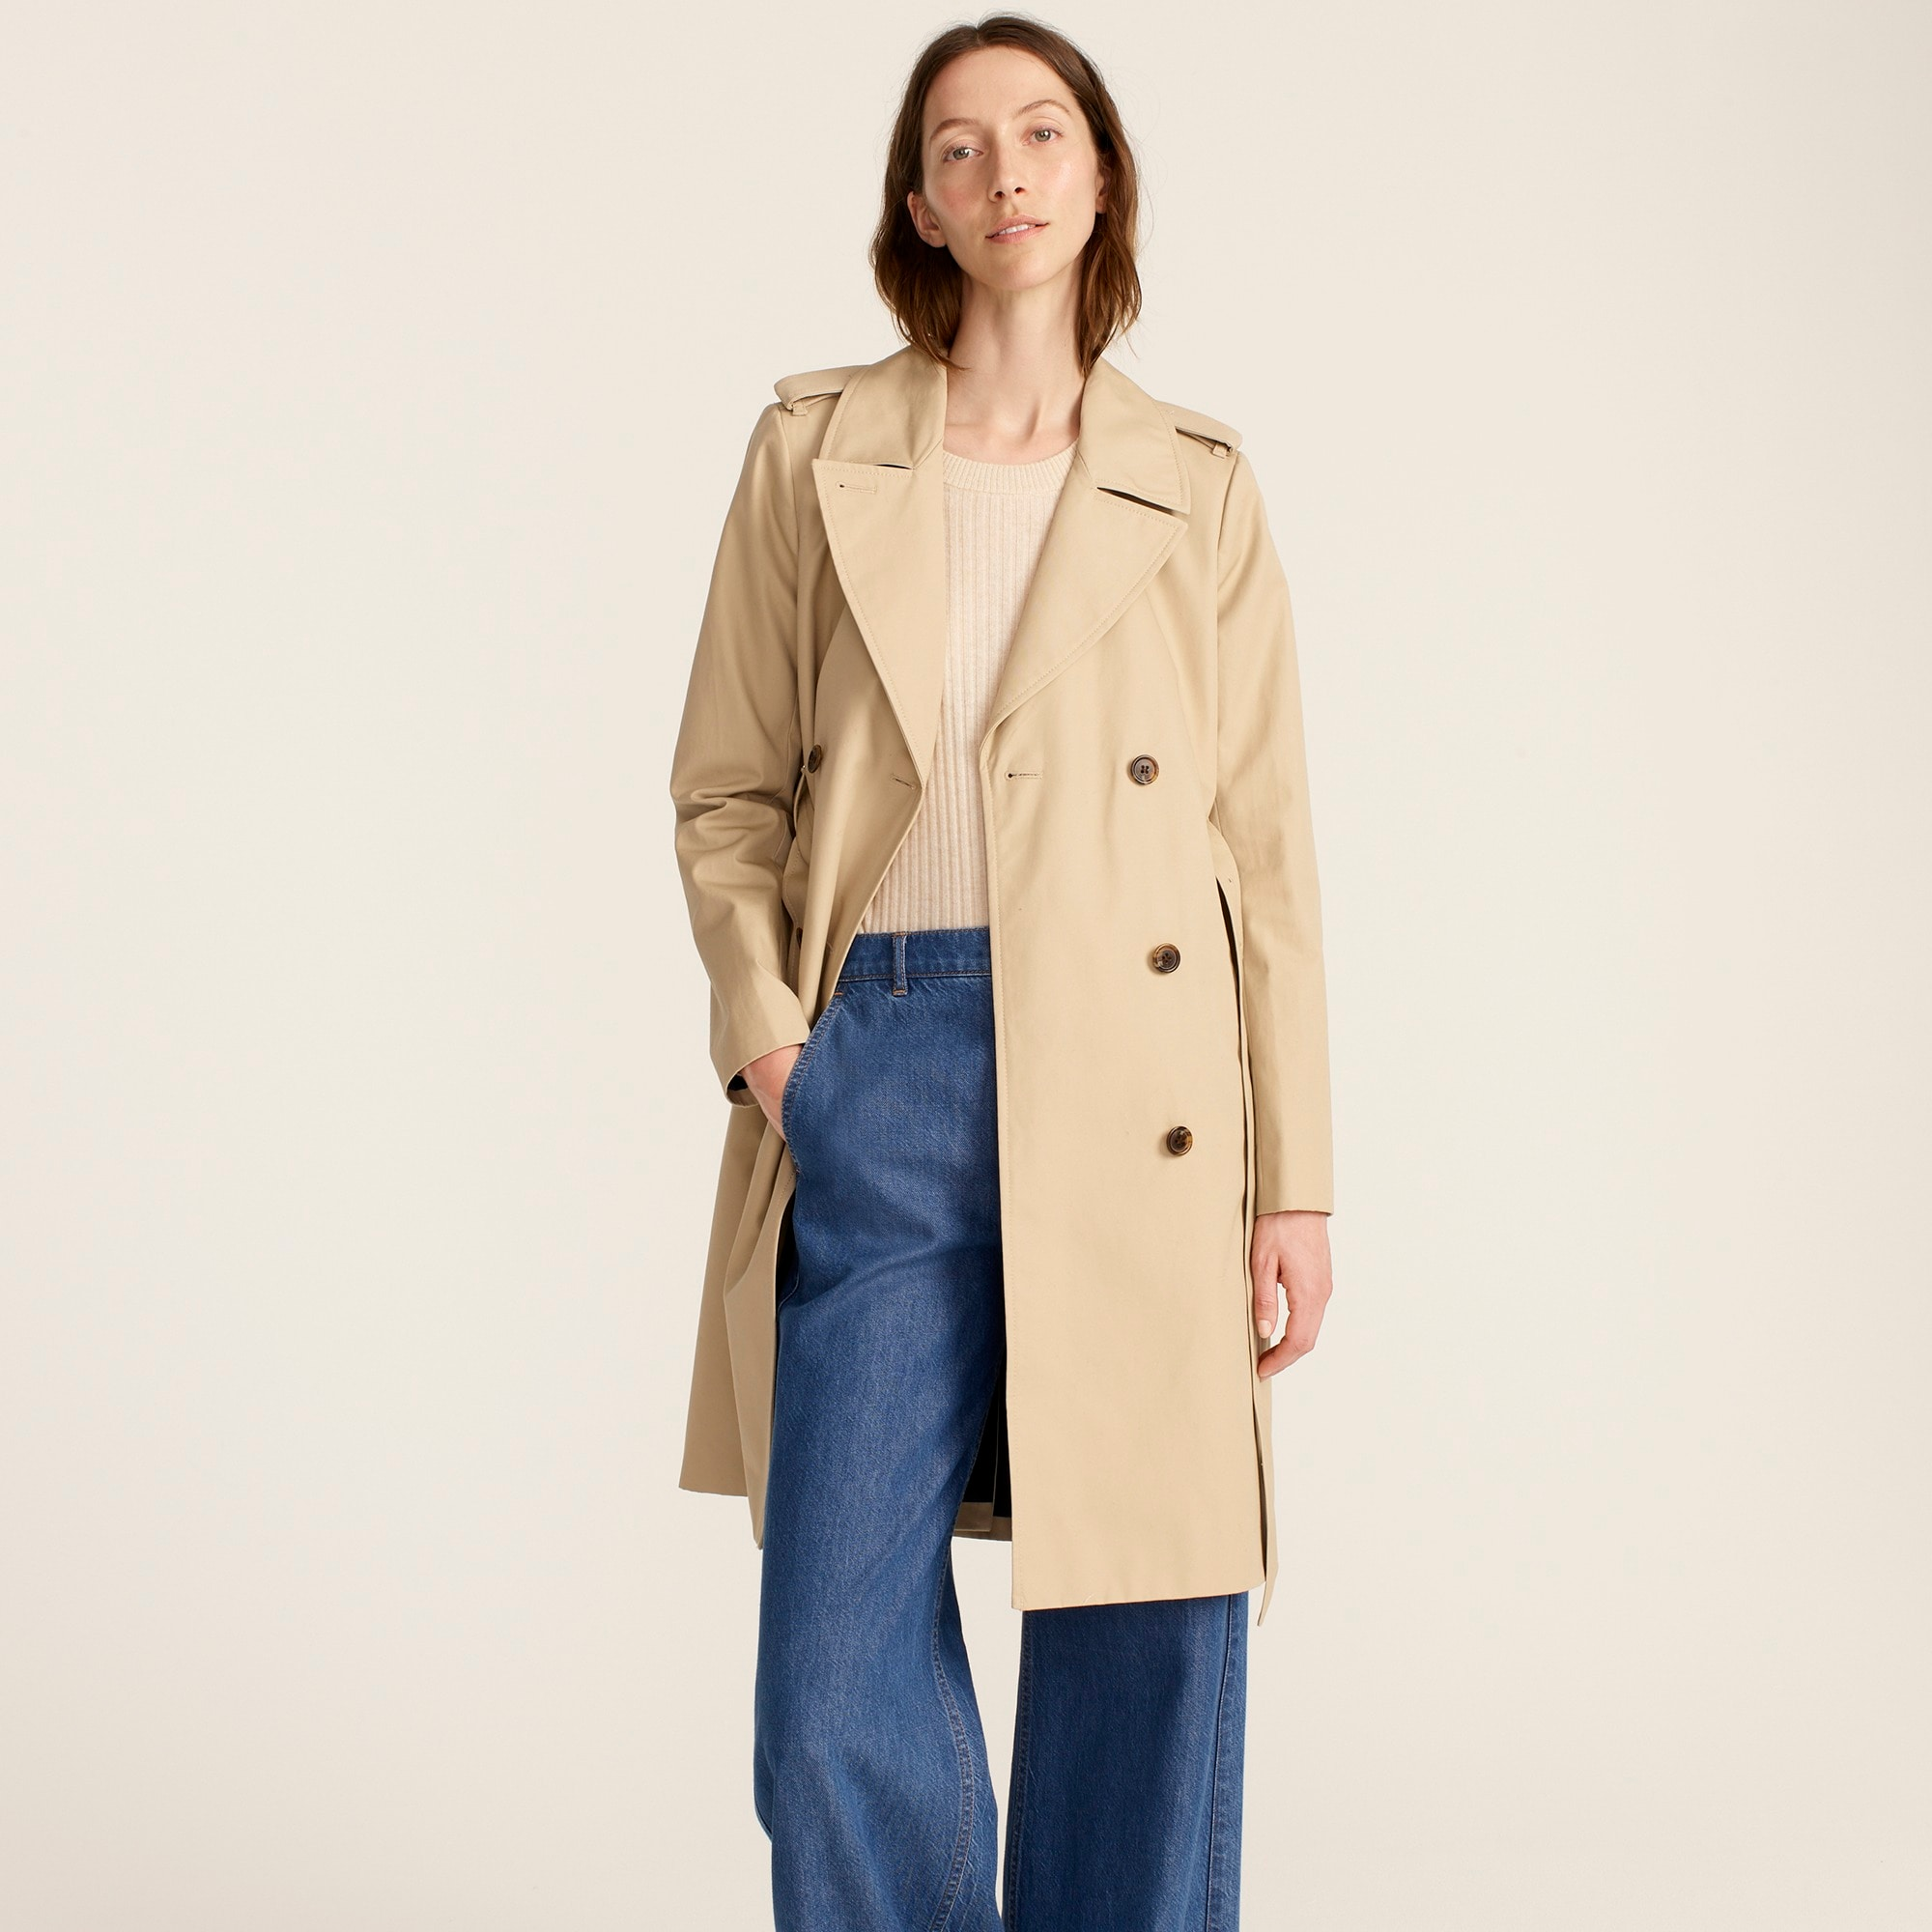 Petite women's 2011 Icon trench